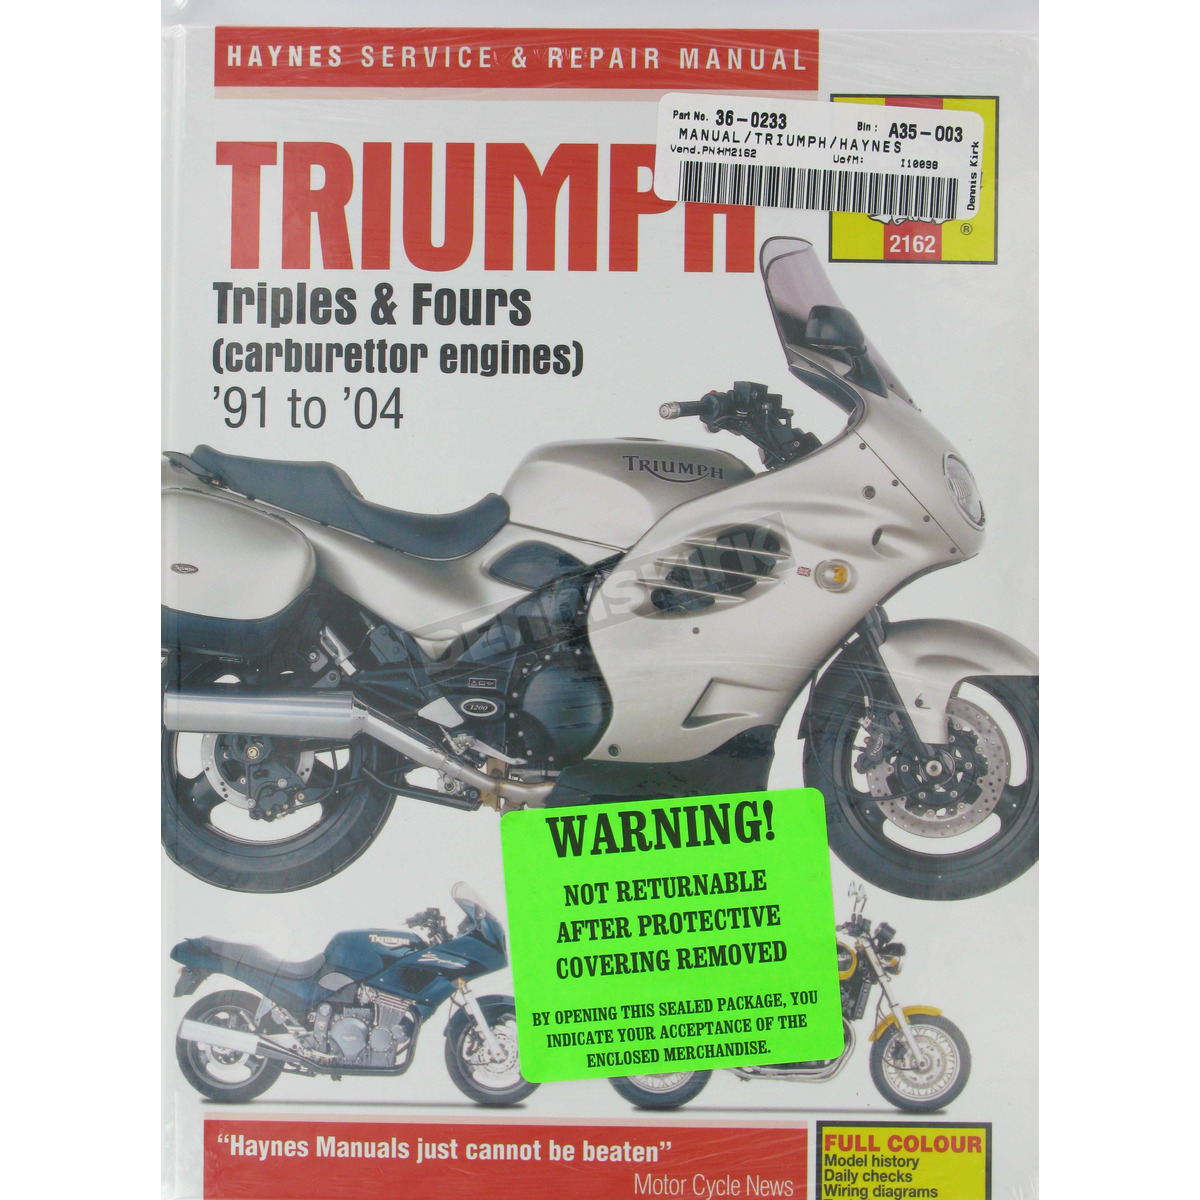 Haynes Triumph Motorcycle Repair Manual - 2162